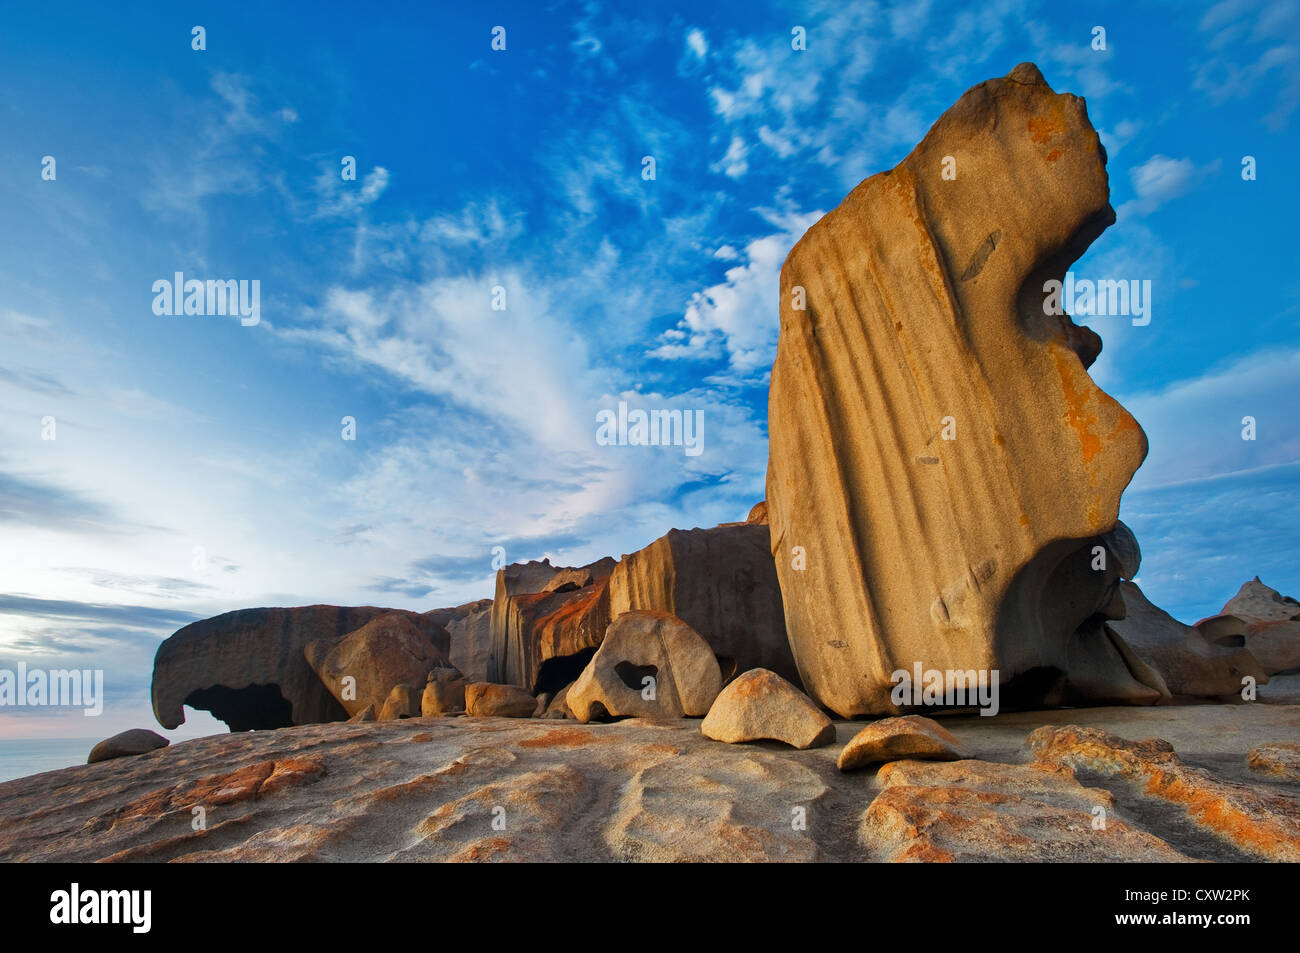 Remarkable Rocks in early morning light. - Stock Image